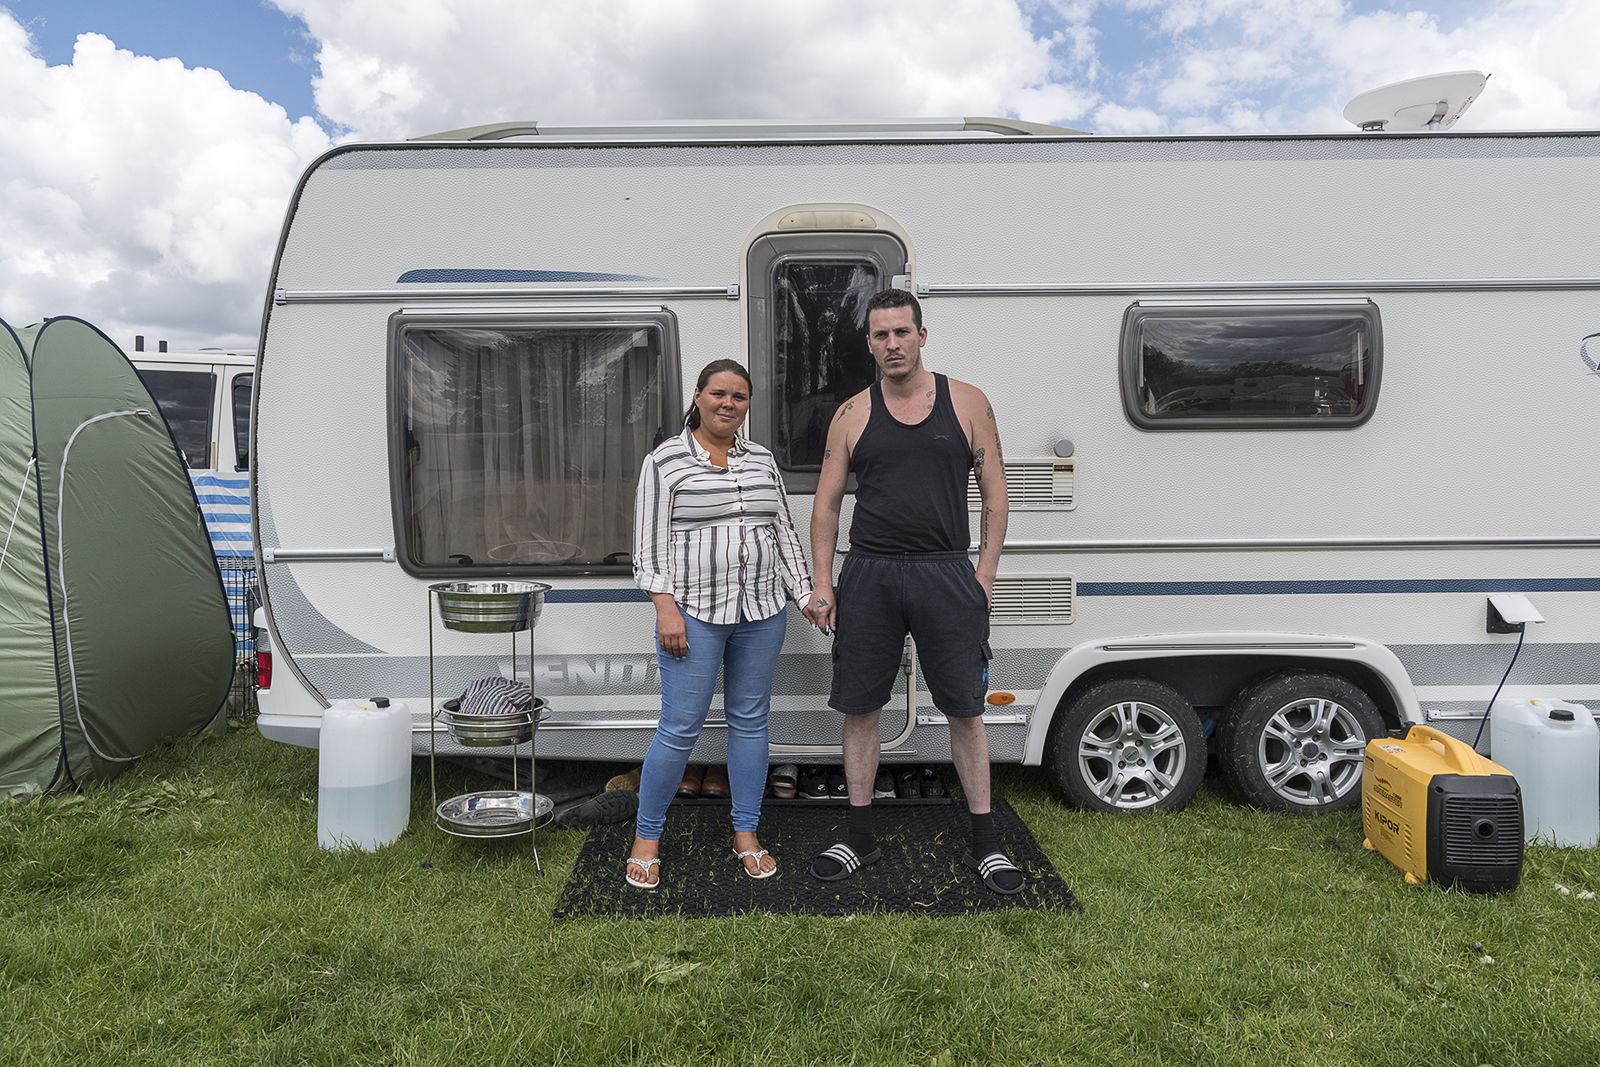 Couple in front of their caravan, Appleby Horse Fair, UK 2019